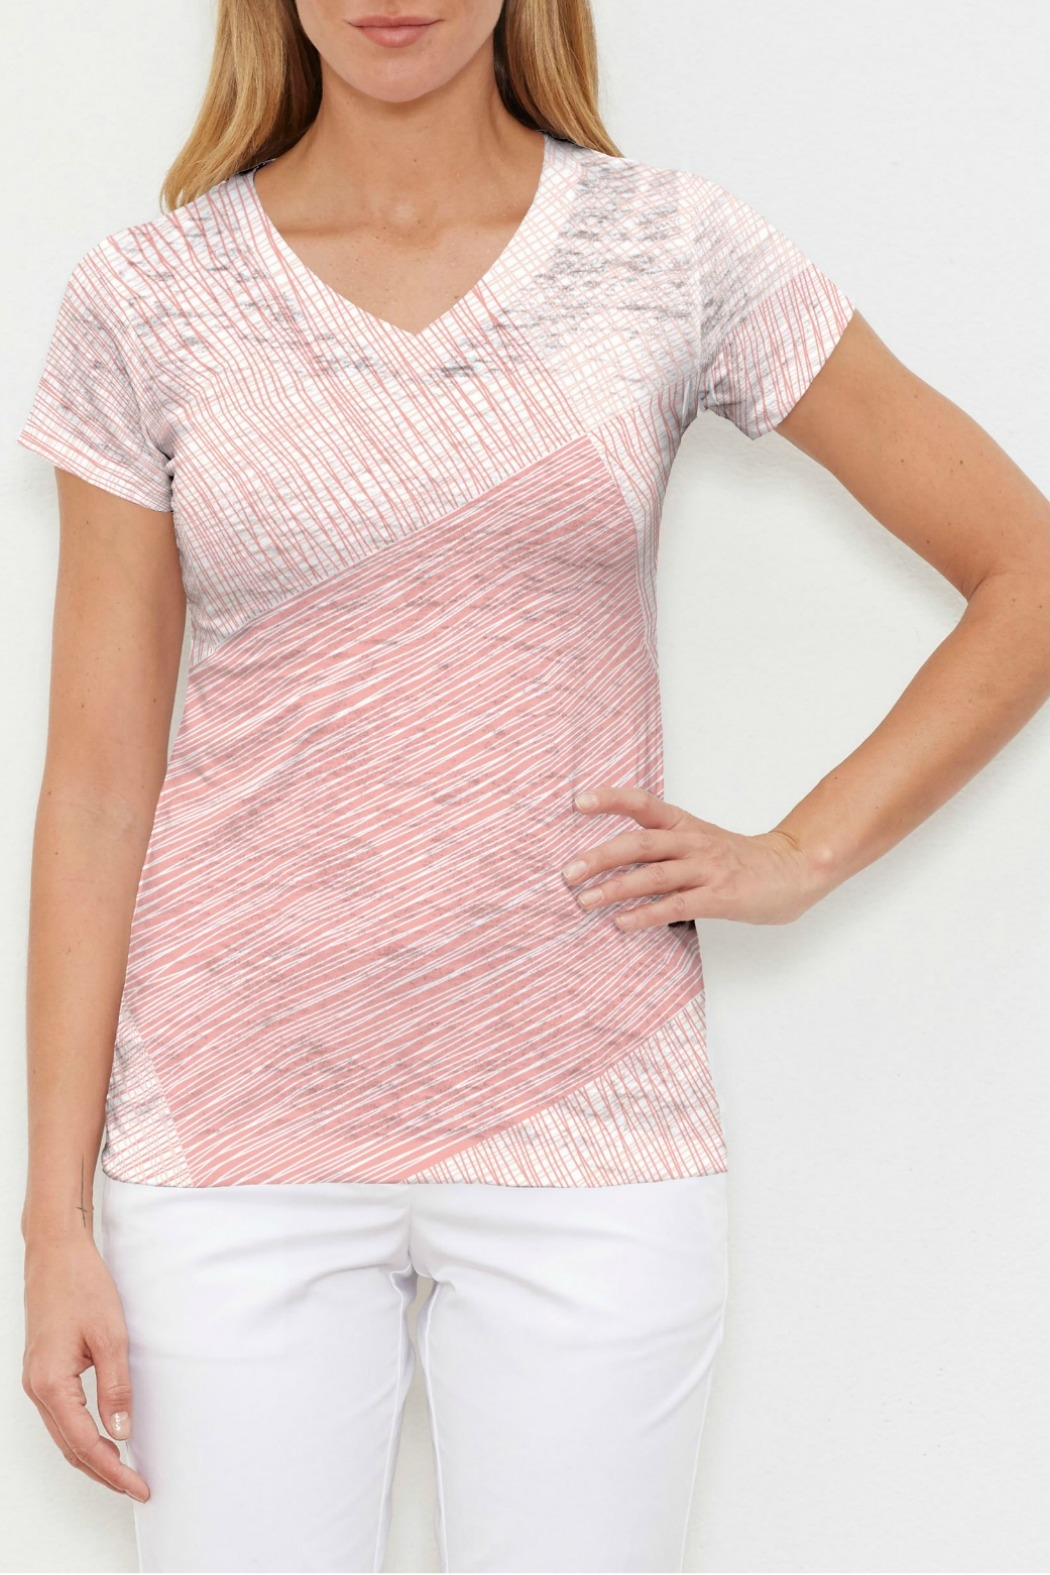 Whimsy Rose Sketch Coral V-Neck Tee - Main Image